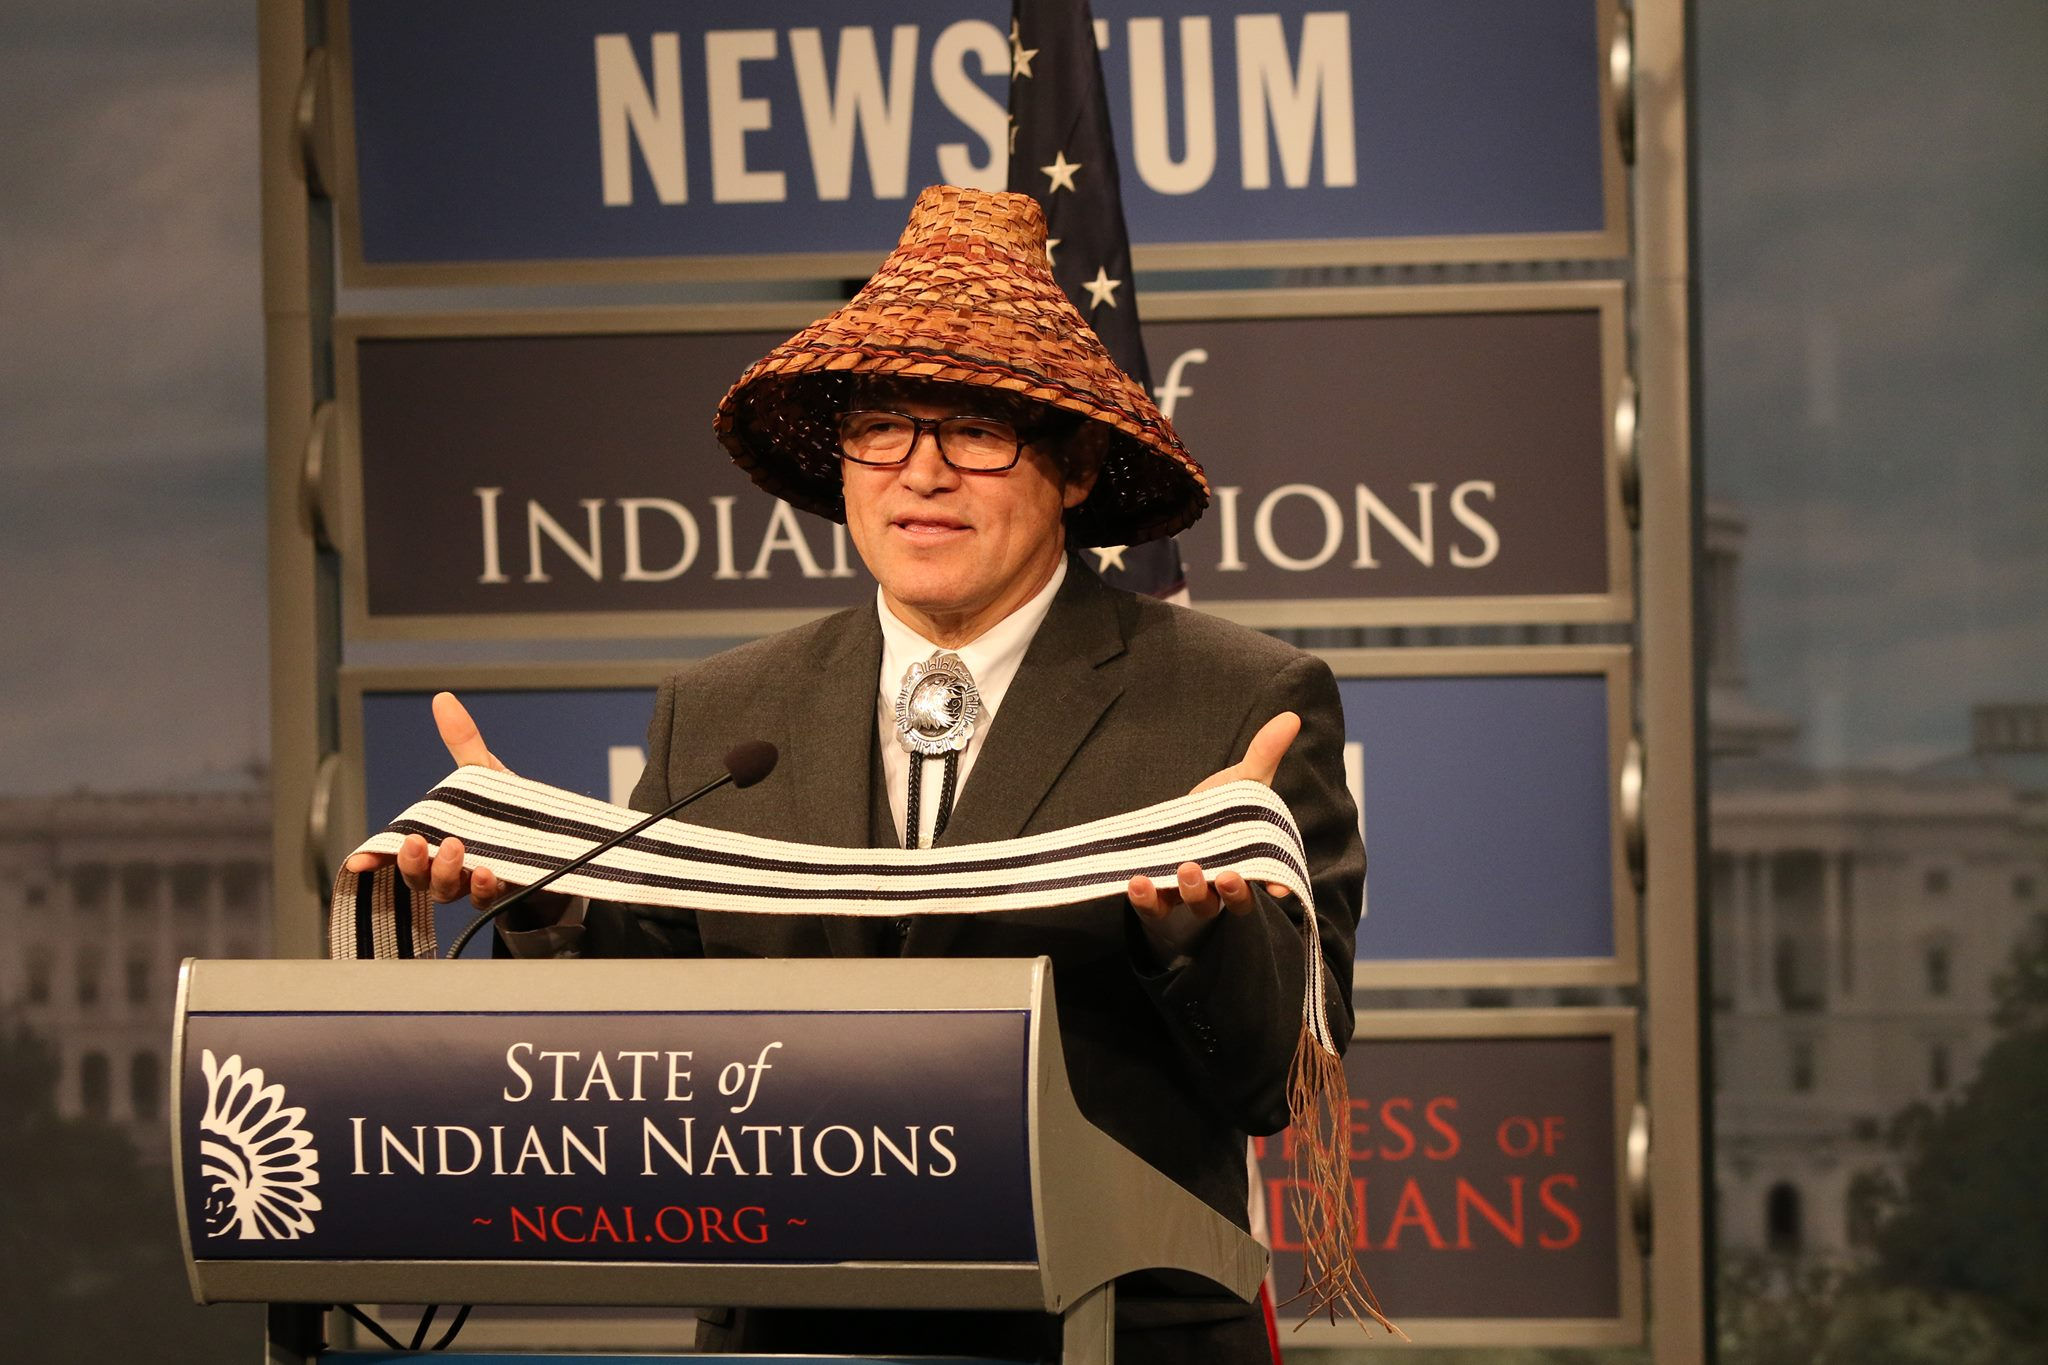 NCAI responds to criticism from Rep. Young on land-into-trust